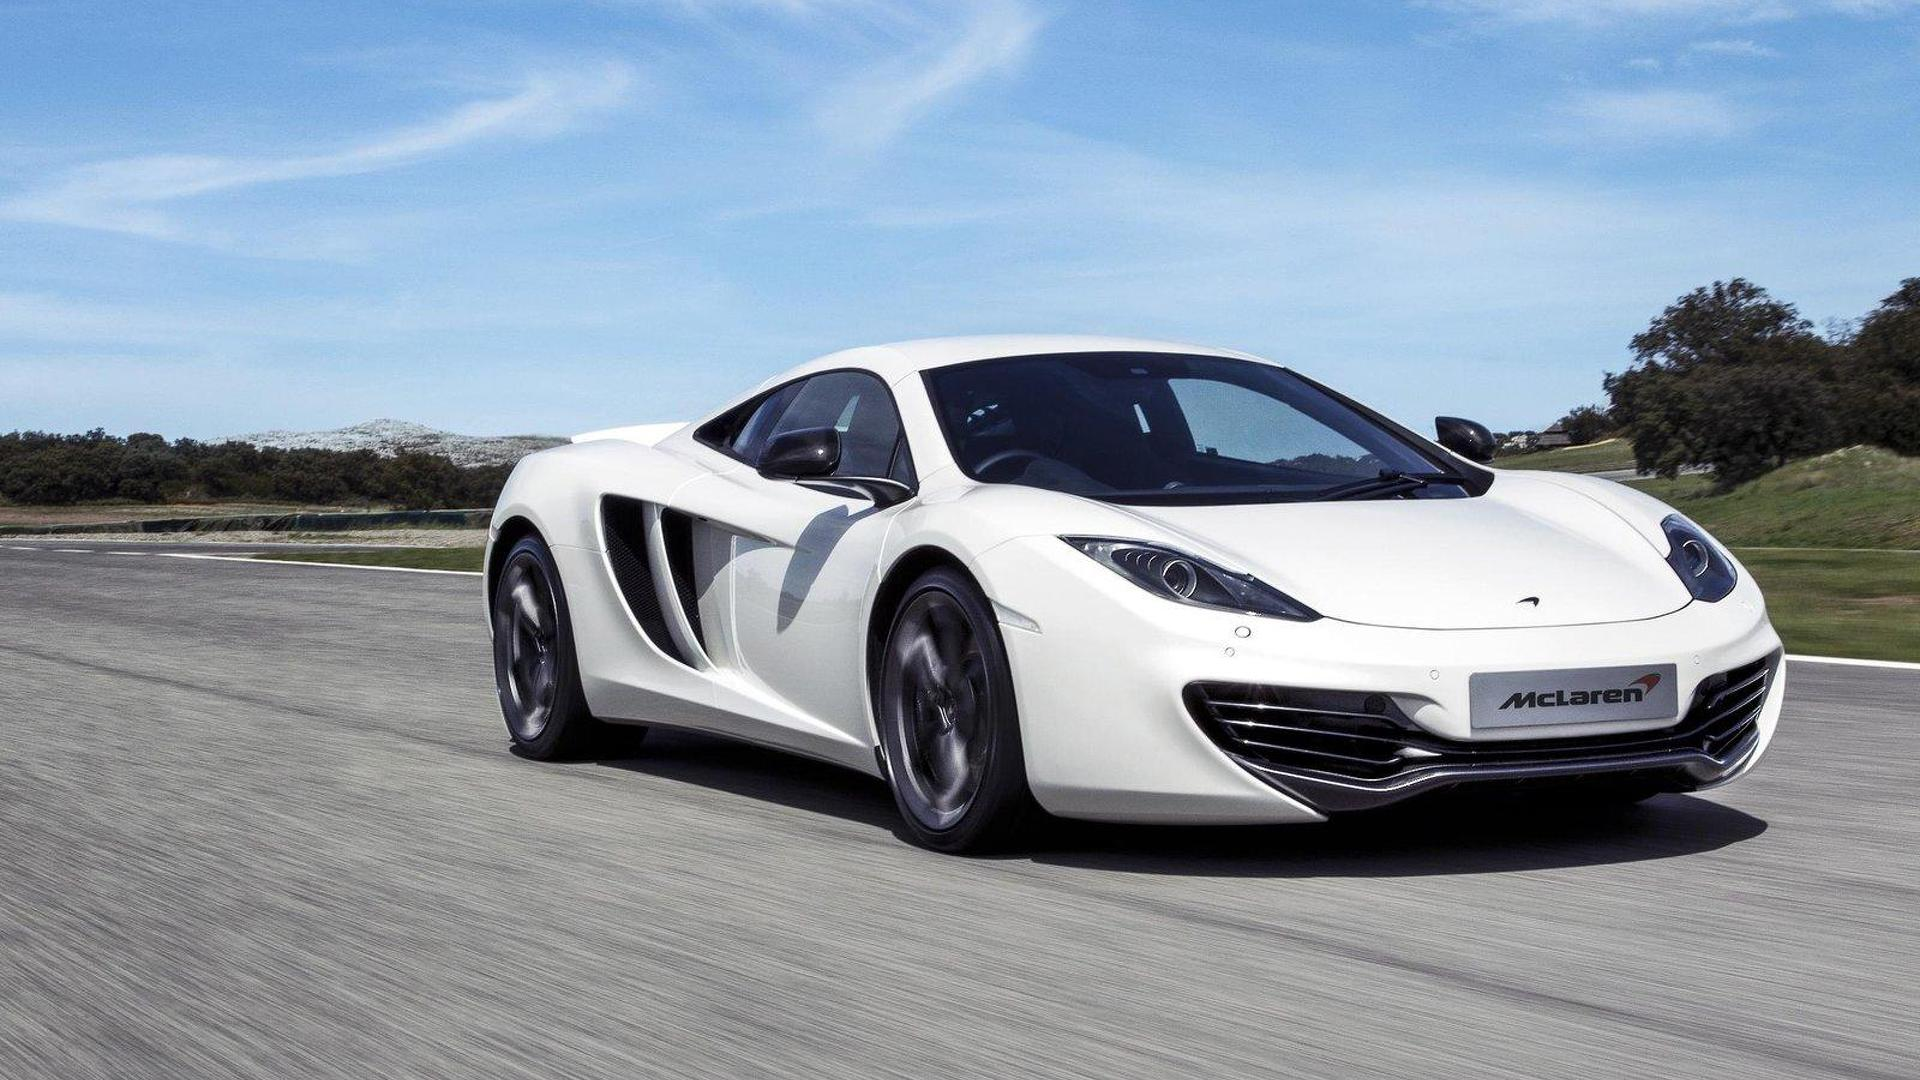 2013 McLaren MP4-12C to debut at the Goodwood Festival of Speed